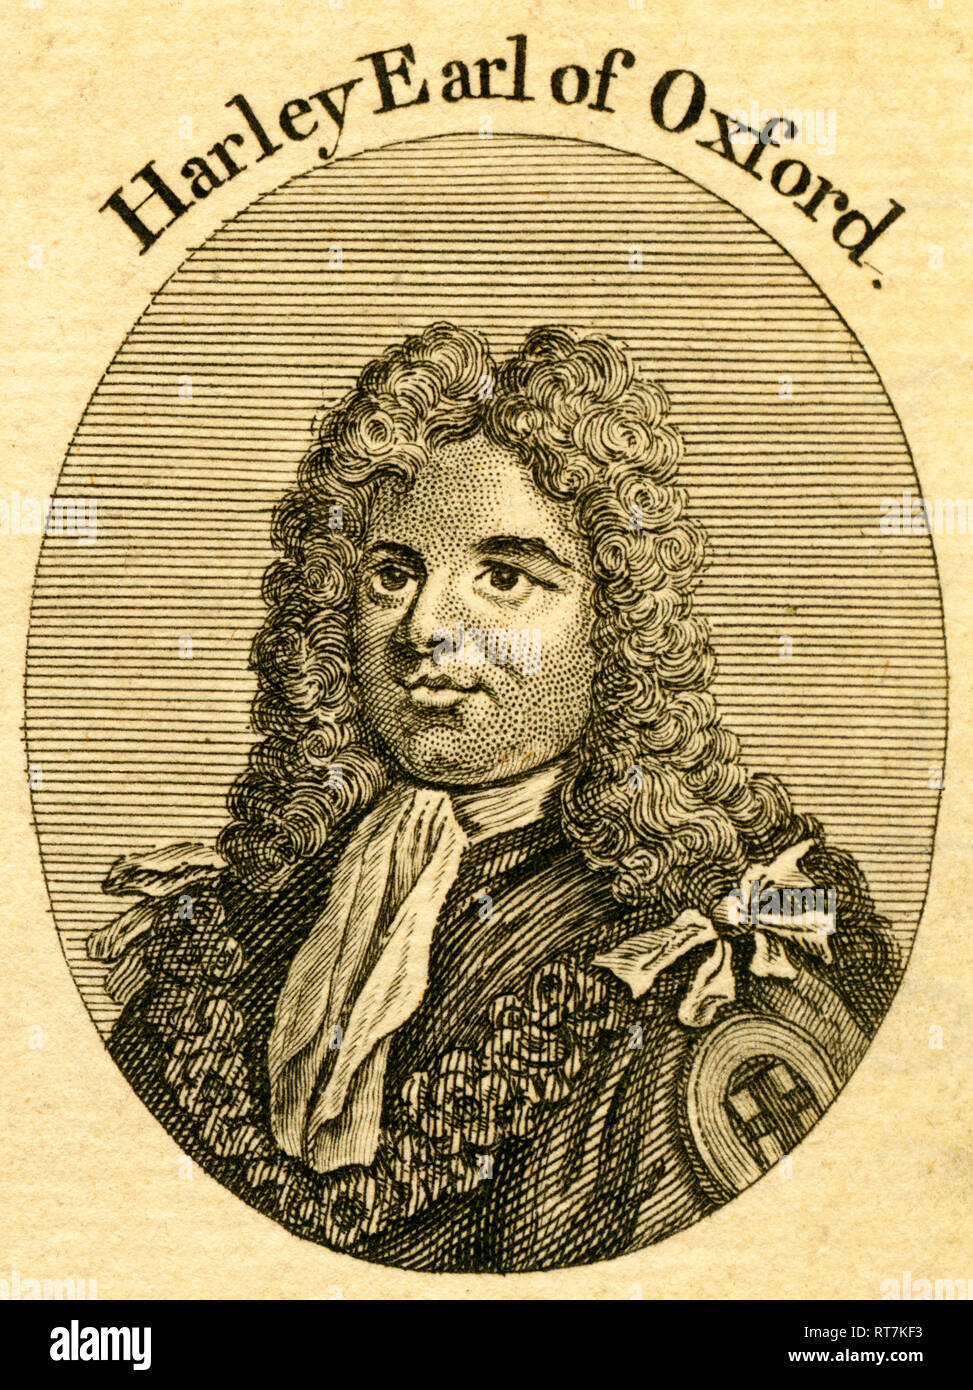 Harley Earl of Oxford, British politician and statesman, etching from an book of the 18th century (1766), Additional-Rights-Clearance-Info-Not-Available - Stock Image